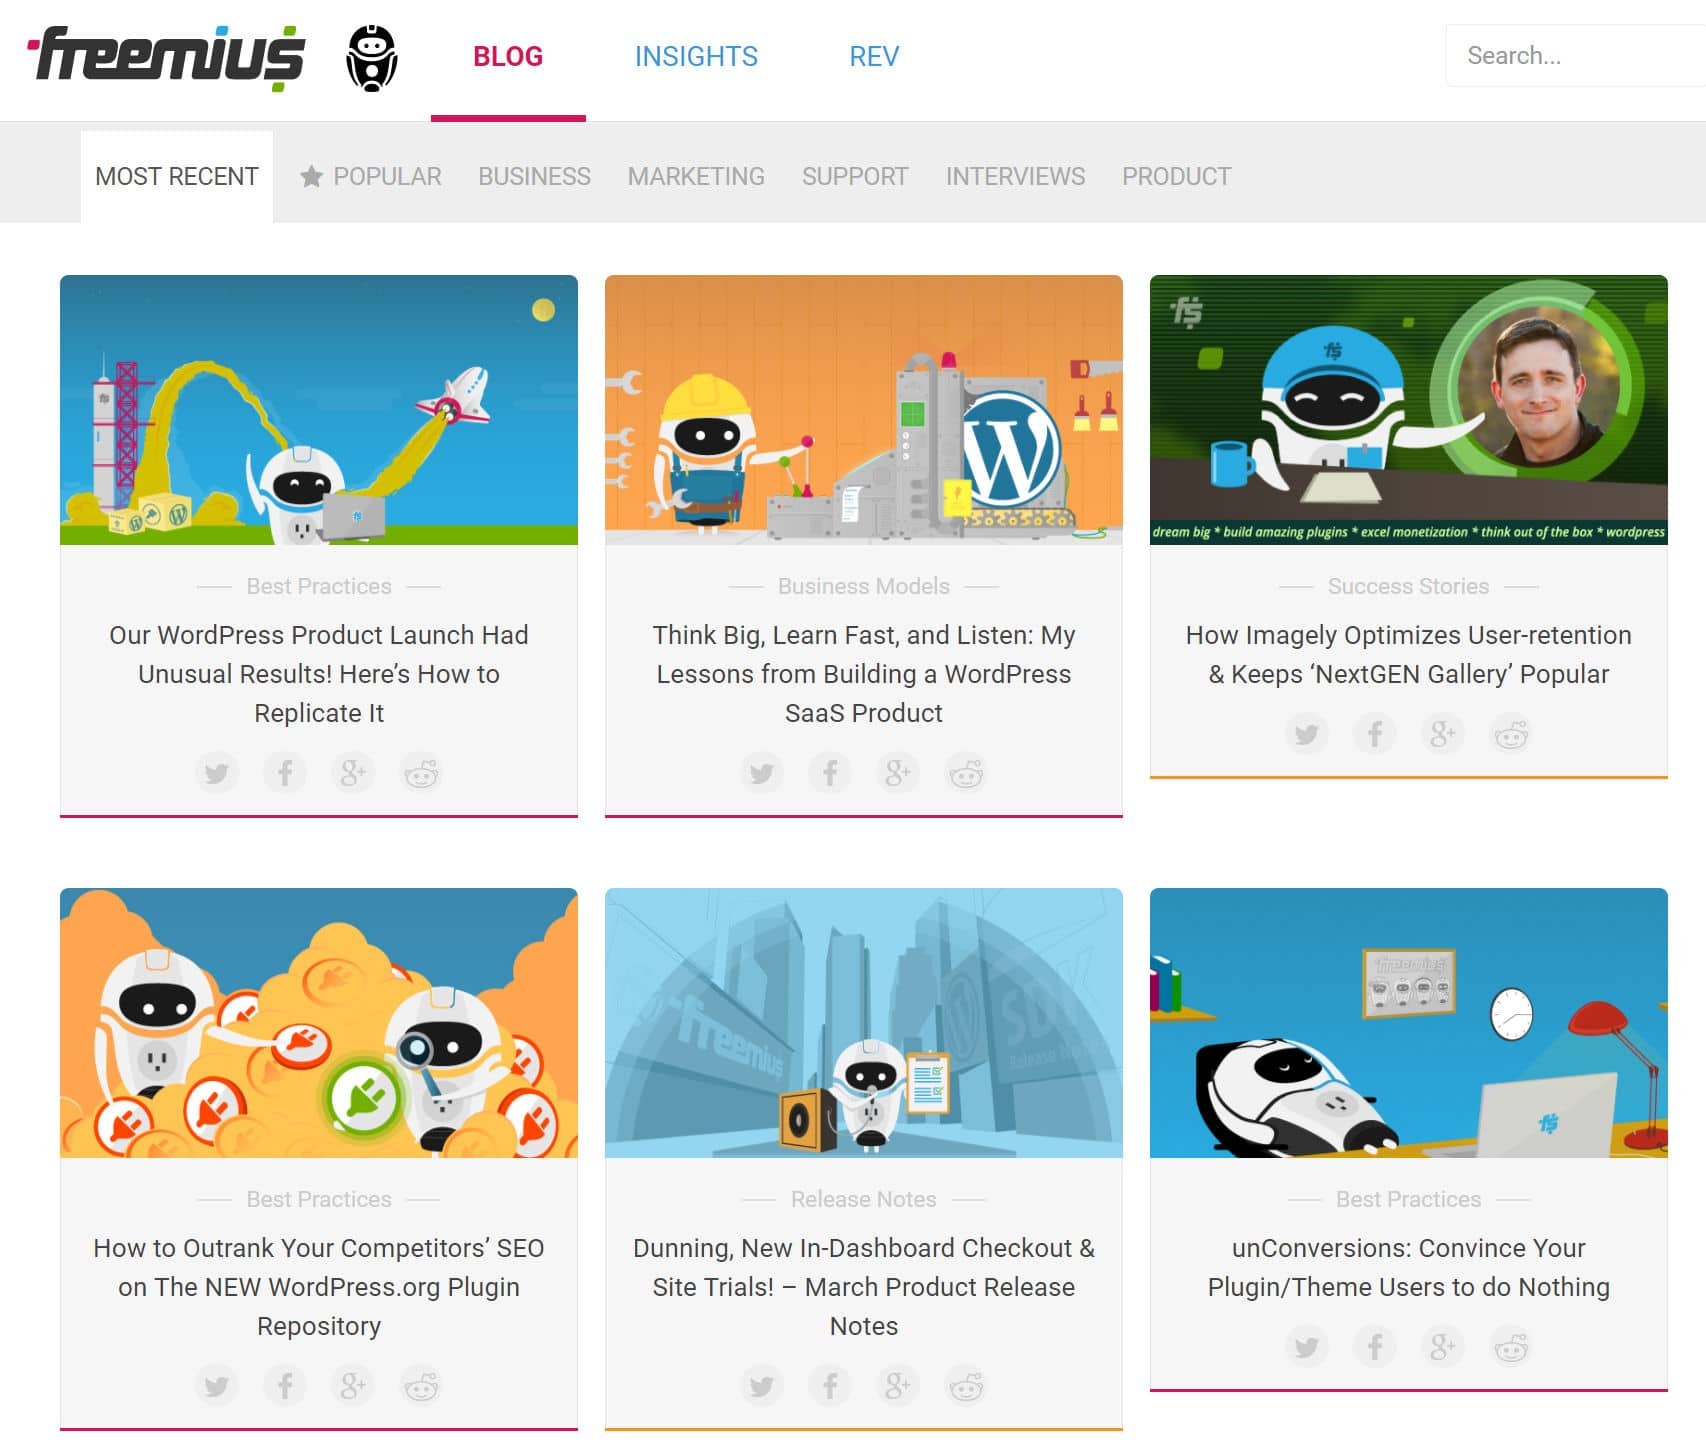 freemius blog